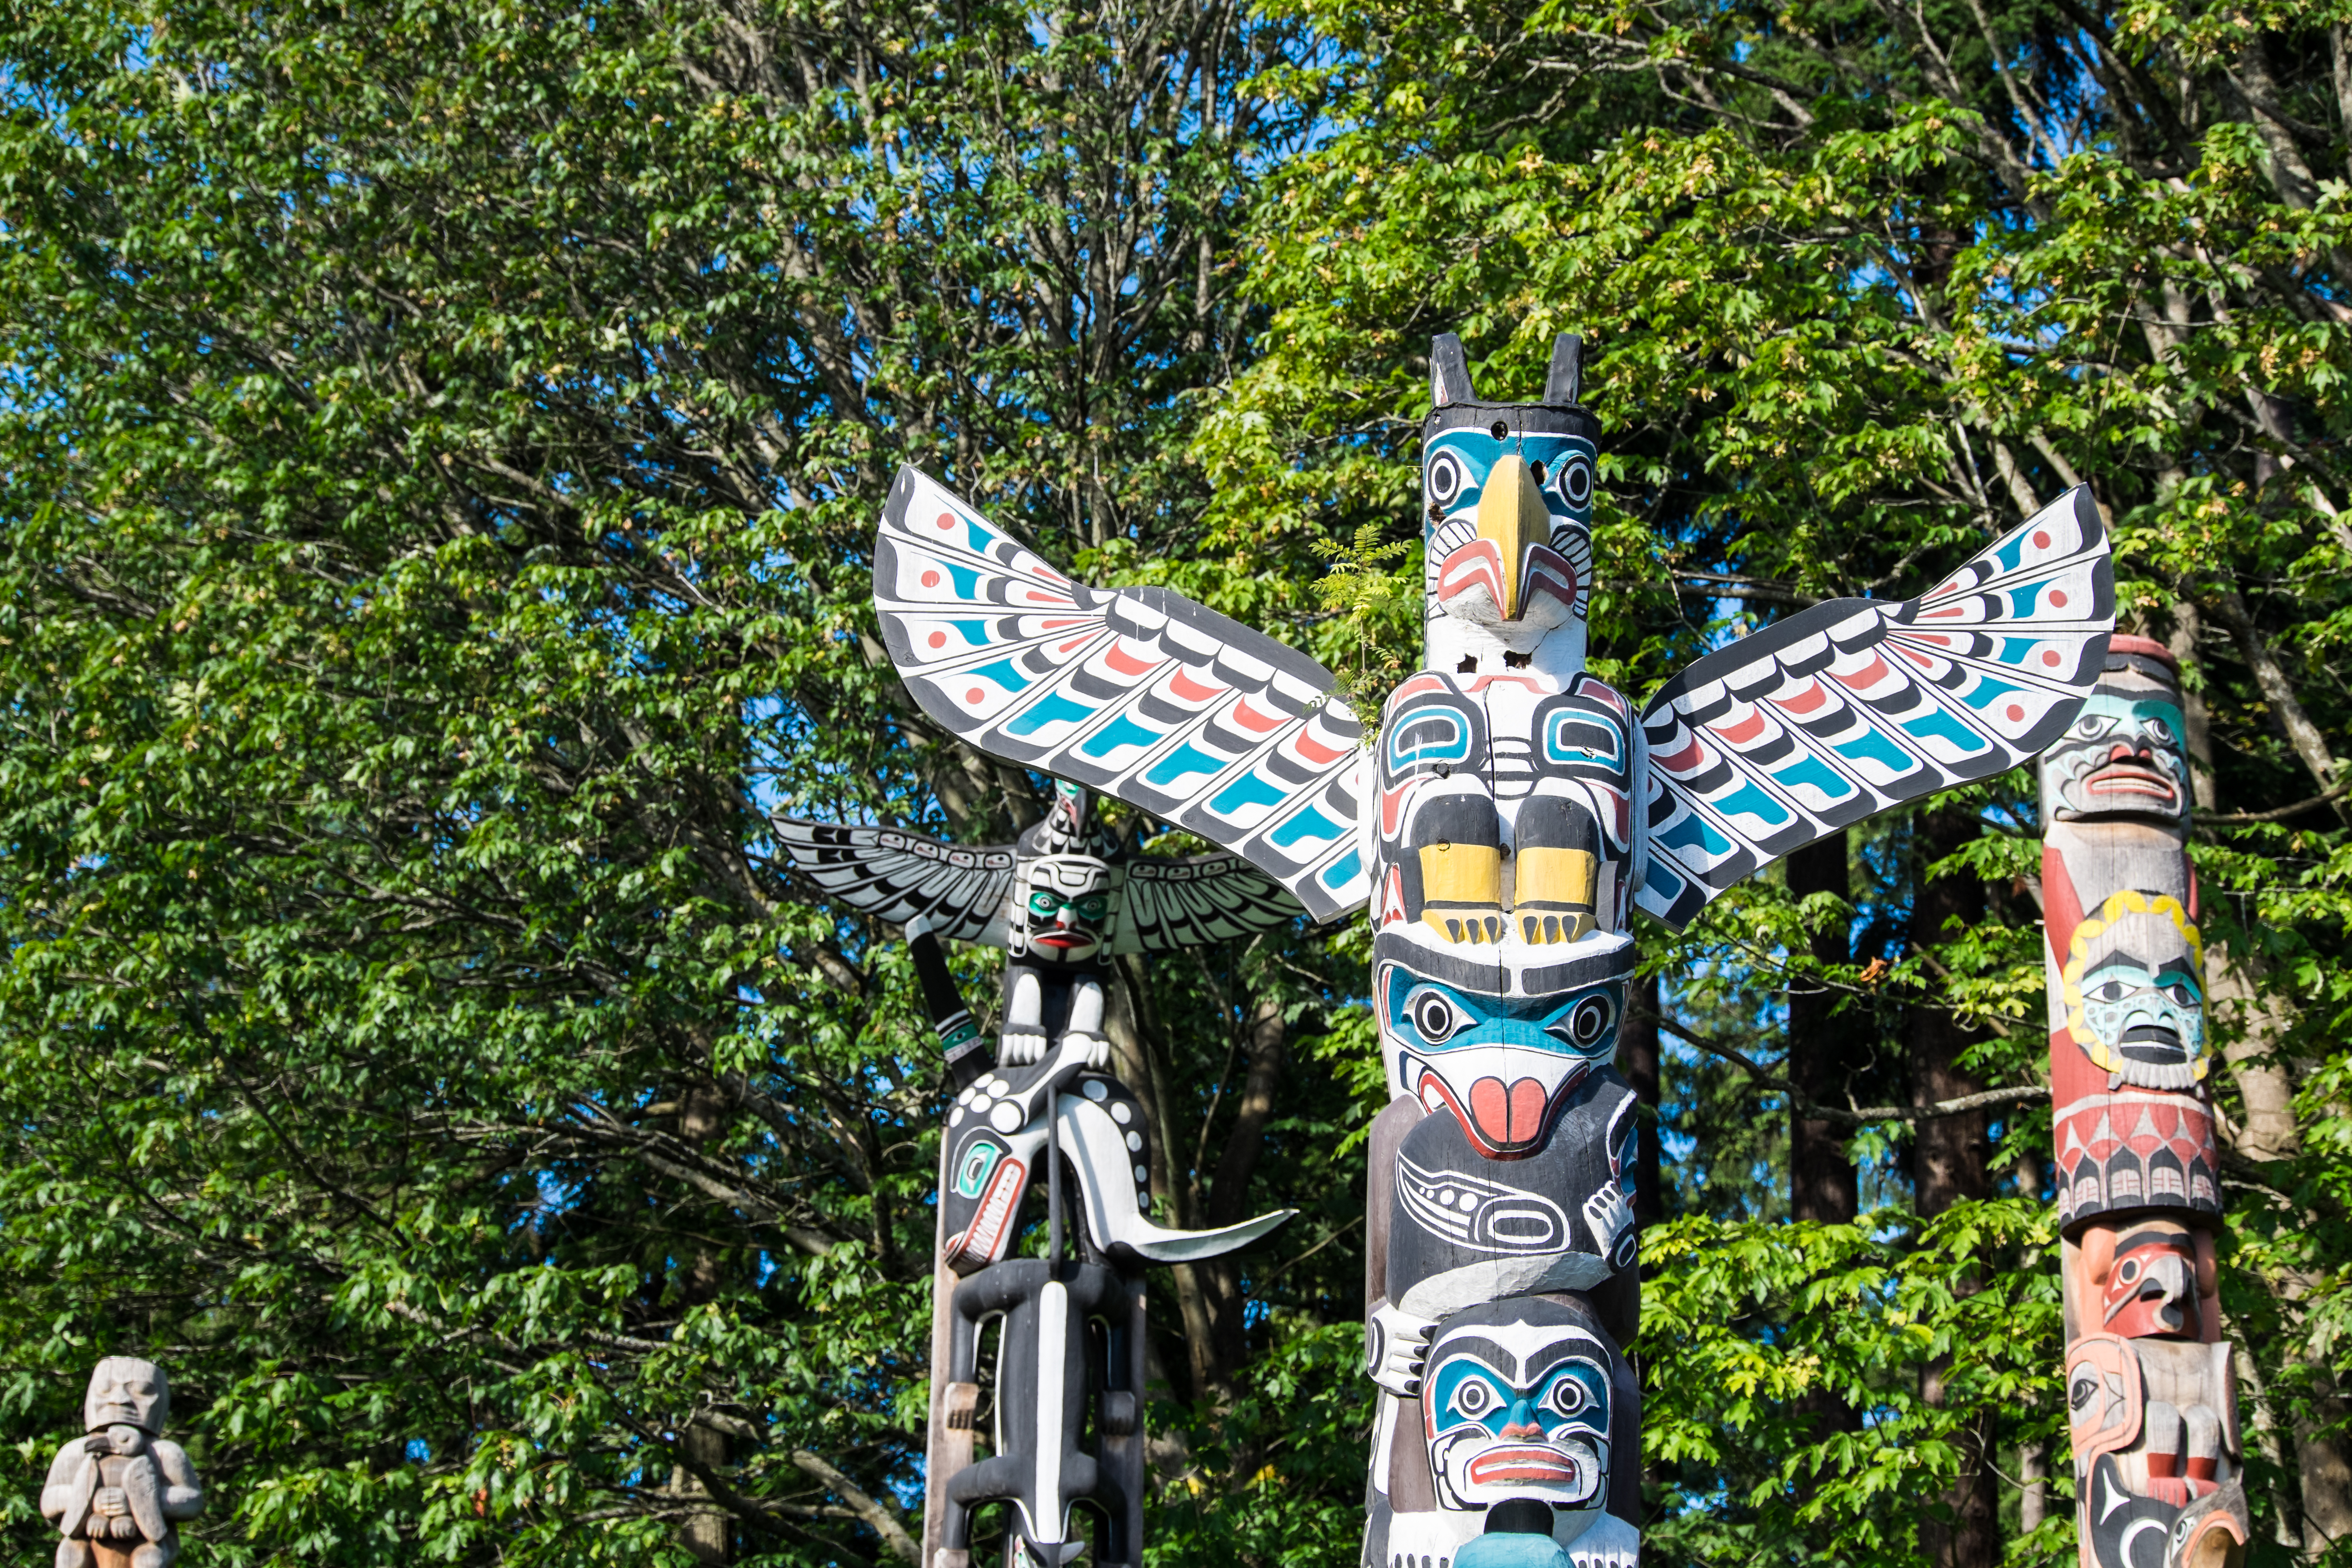 Exploring First Nations culture and art at Stanley Park.